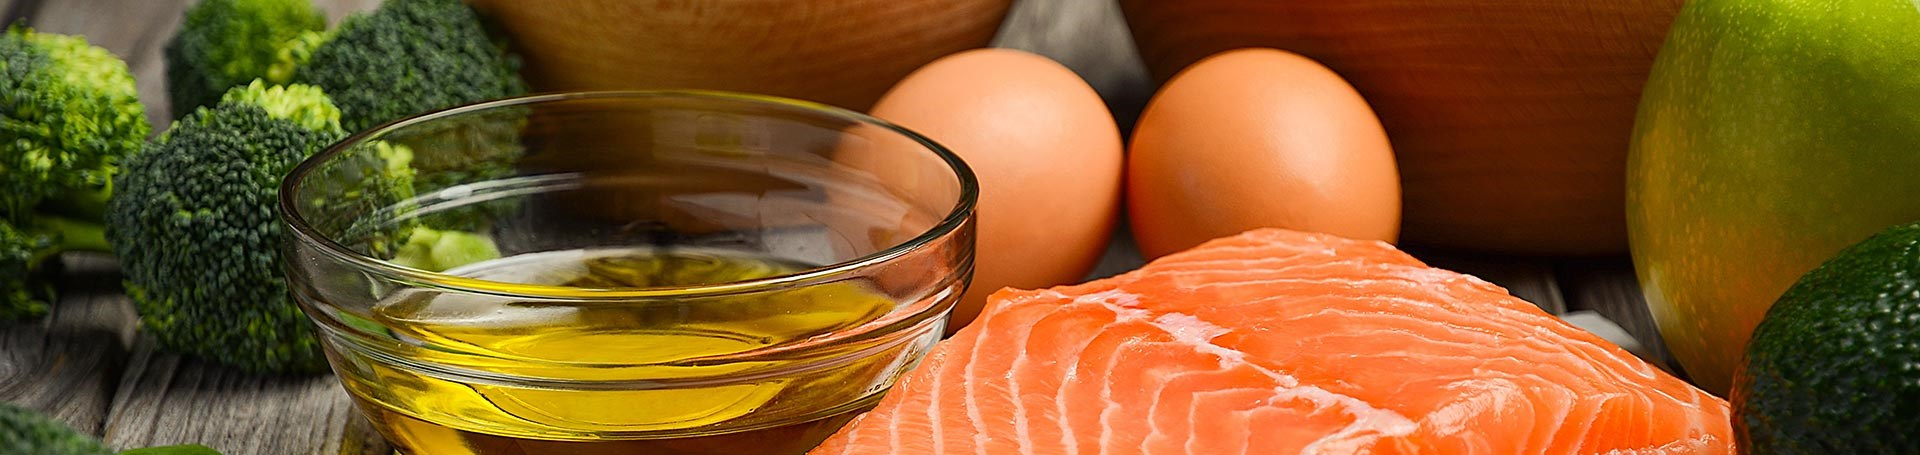 VP_VP_ALL_1920x455_1805_Salmon_Eggs_Table.jpg